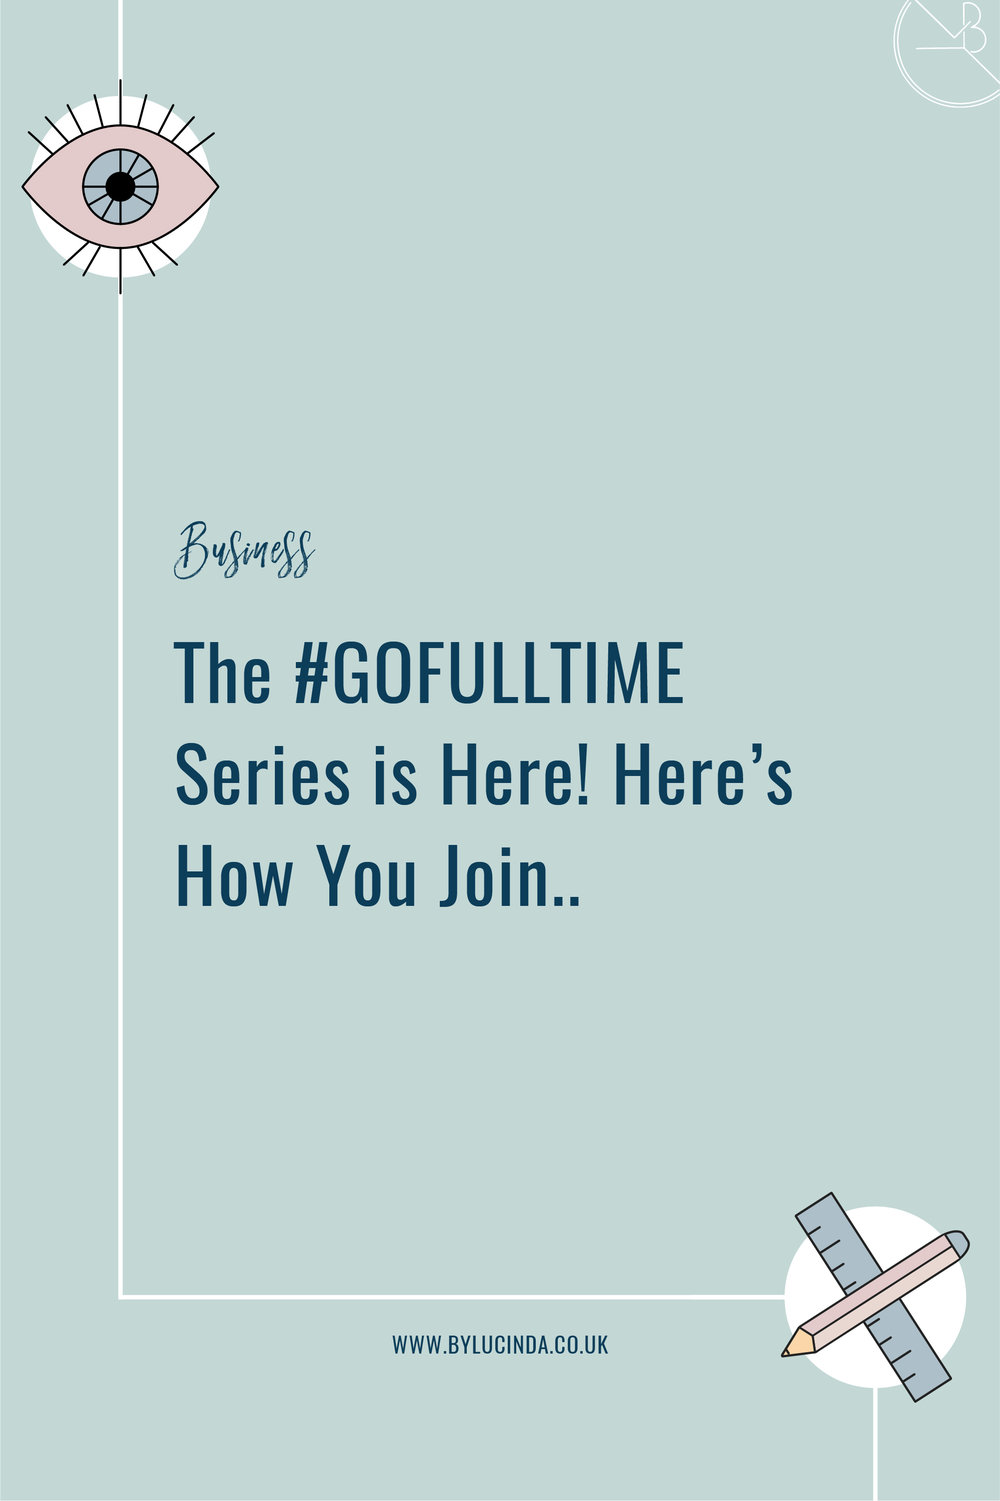 This series was specifically designed to help inspired side-hustlers make a smooth and successful transition from side-hustle to self-employed! I break down each step to ensure you've planned out everything as meticulously as possible, to see the same successes I did in a short period of time! Trust me, this s*** works. The #GOFULLTIME Series is finally live and I'd be so happy to have you on board! http://bit.ly/GOFULL-TIME